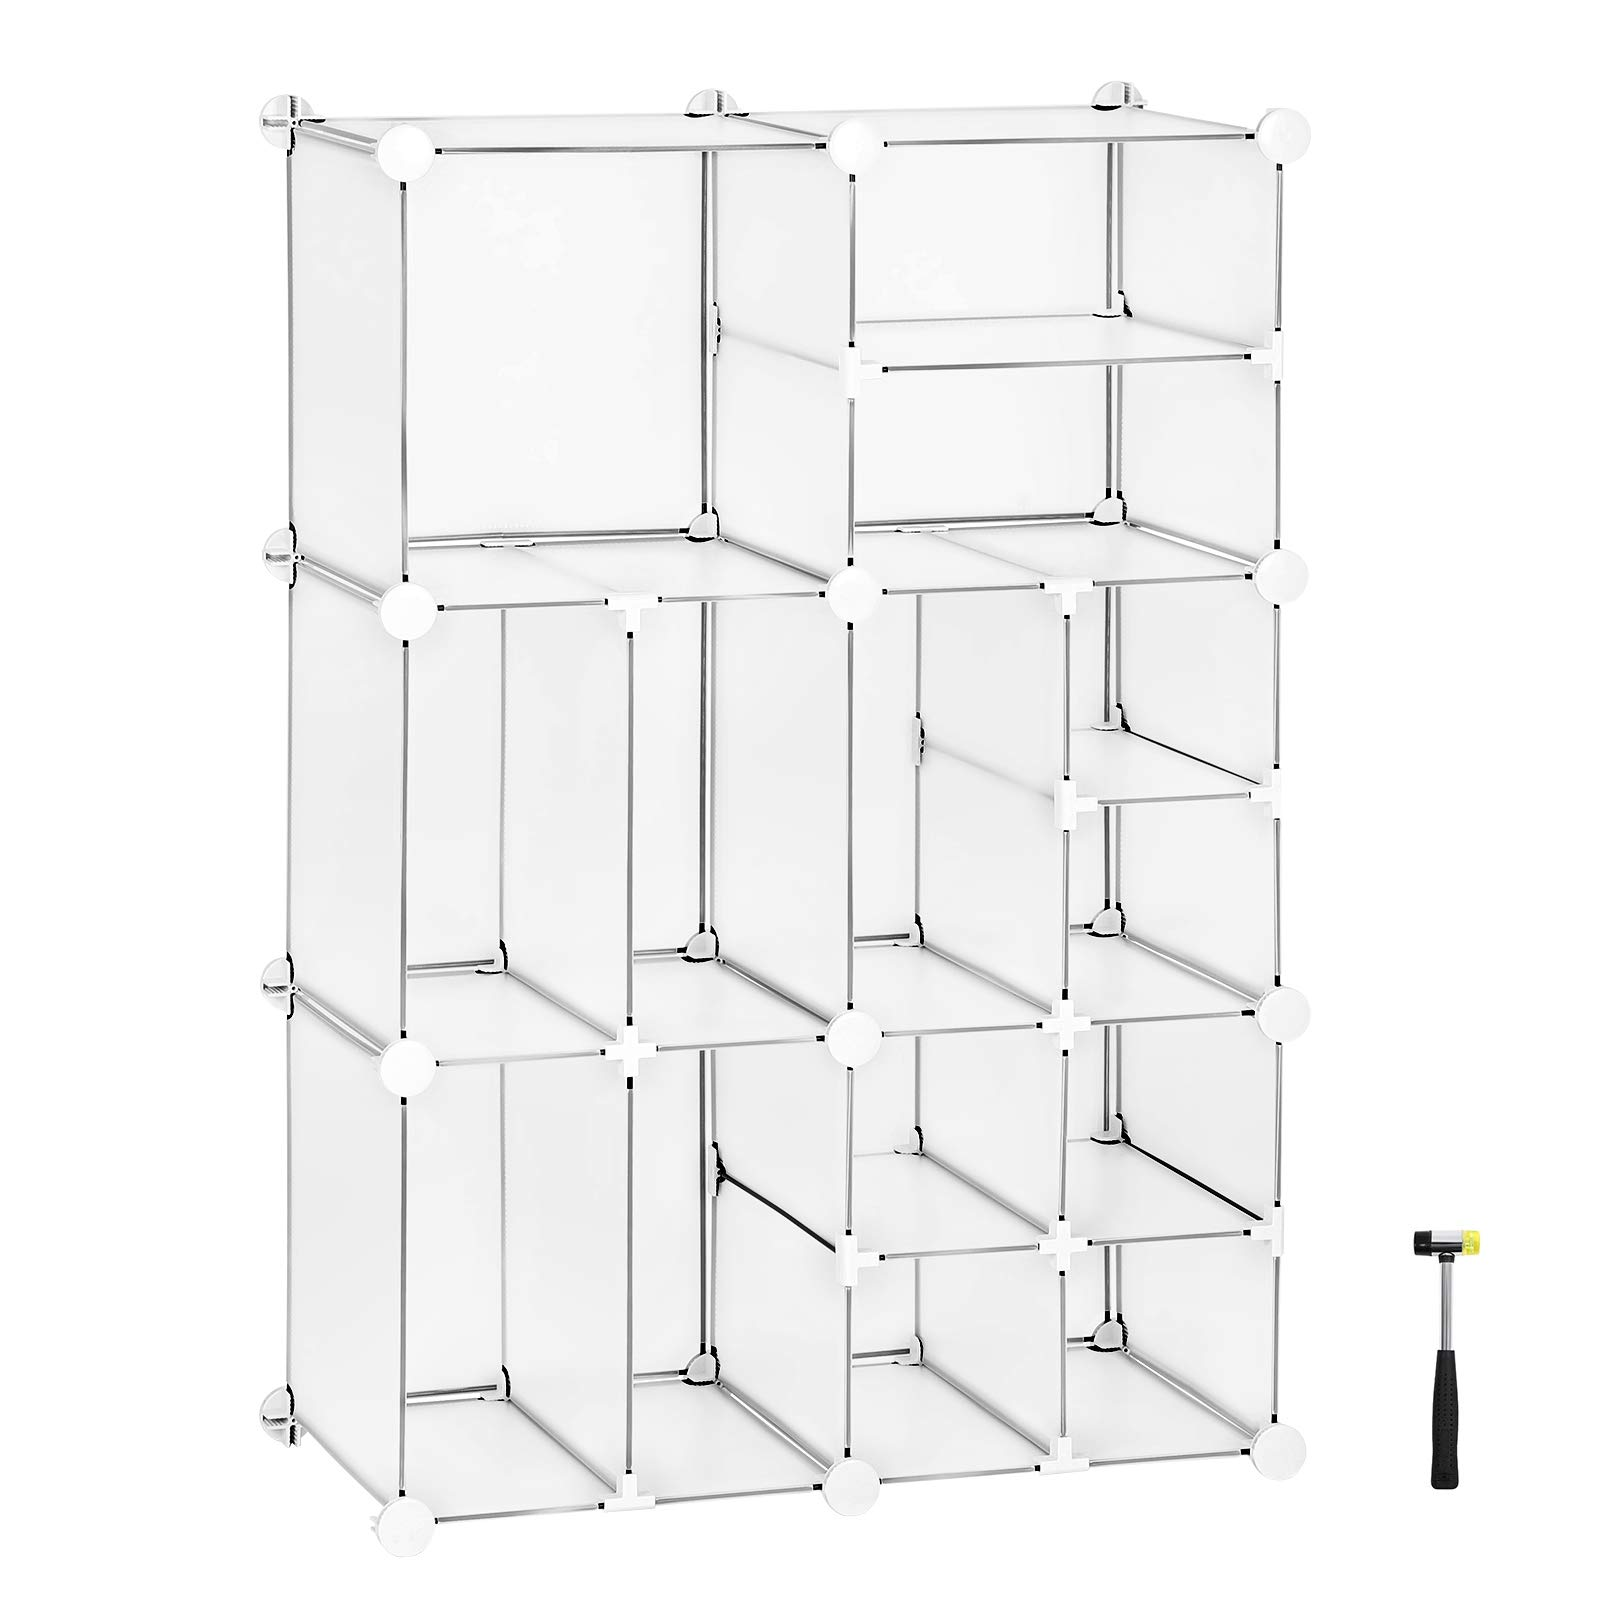 SONGMICS Cube Storage, Plastic Closet Organizer Unit, Space Saving Shelving Unit, Large and Small Style Design for Closet, Living Room, Clothes, Toys, 24.8''L x 12.2''W x 36.6''H White ULPC601W